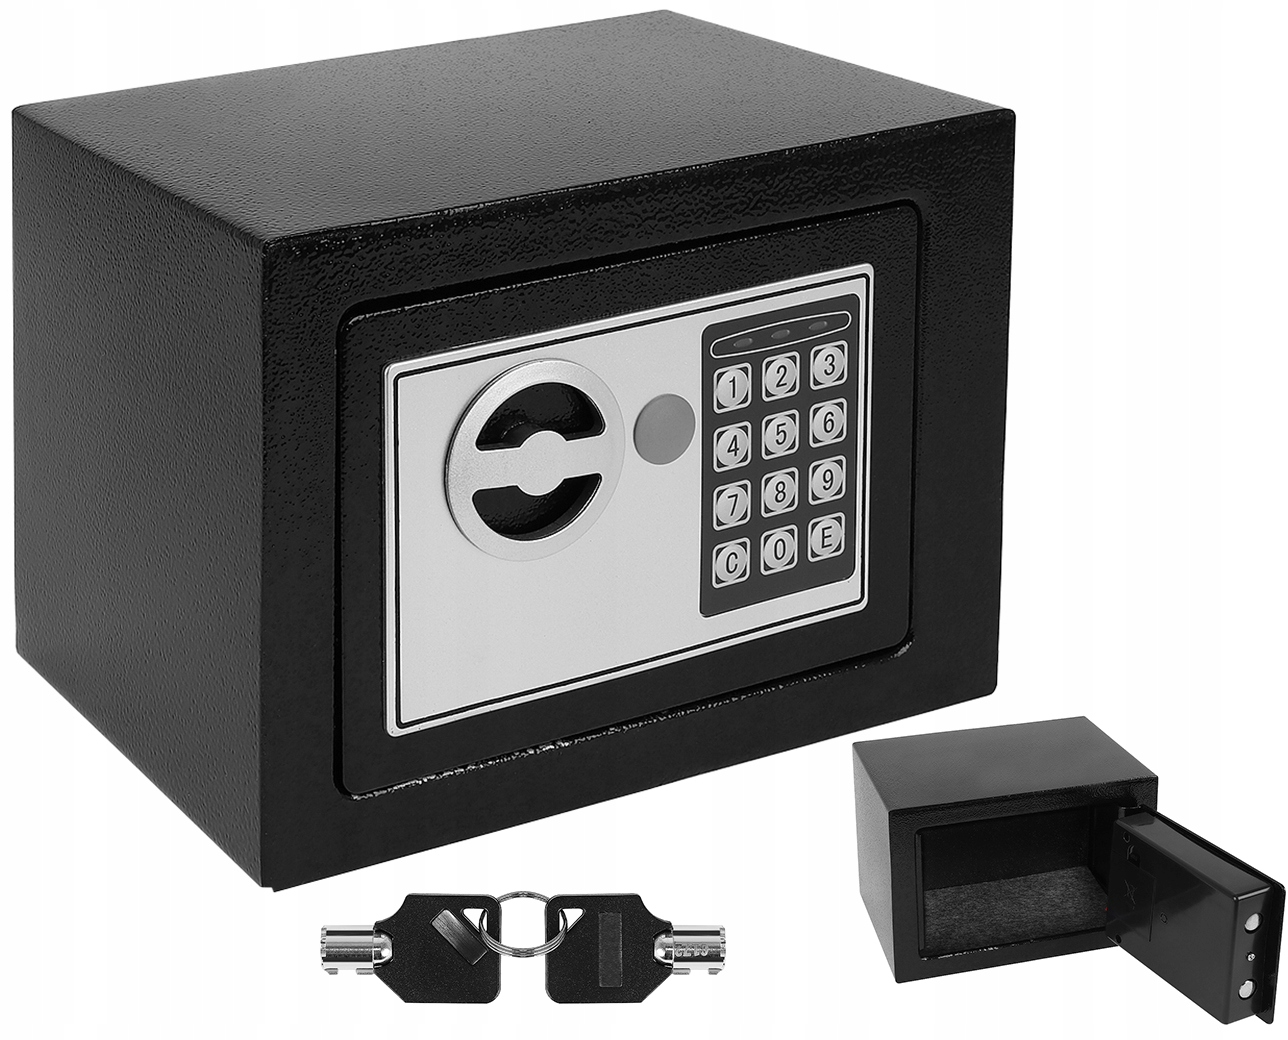 Item A safe Deposit box at the Code, the Electronic Lock of the Key Container